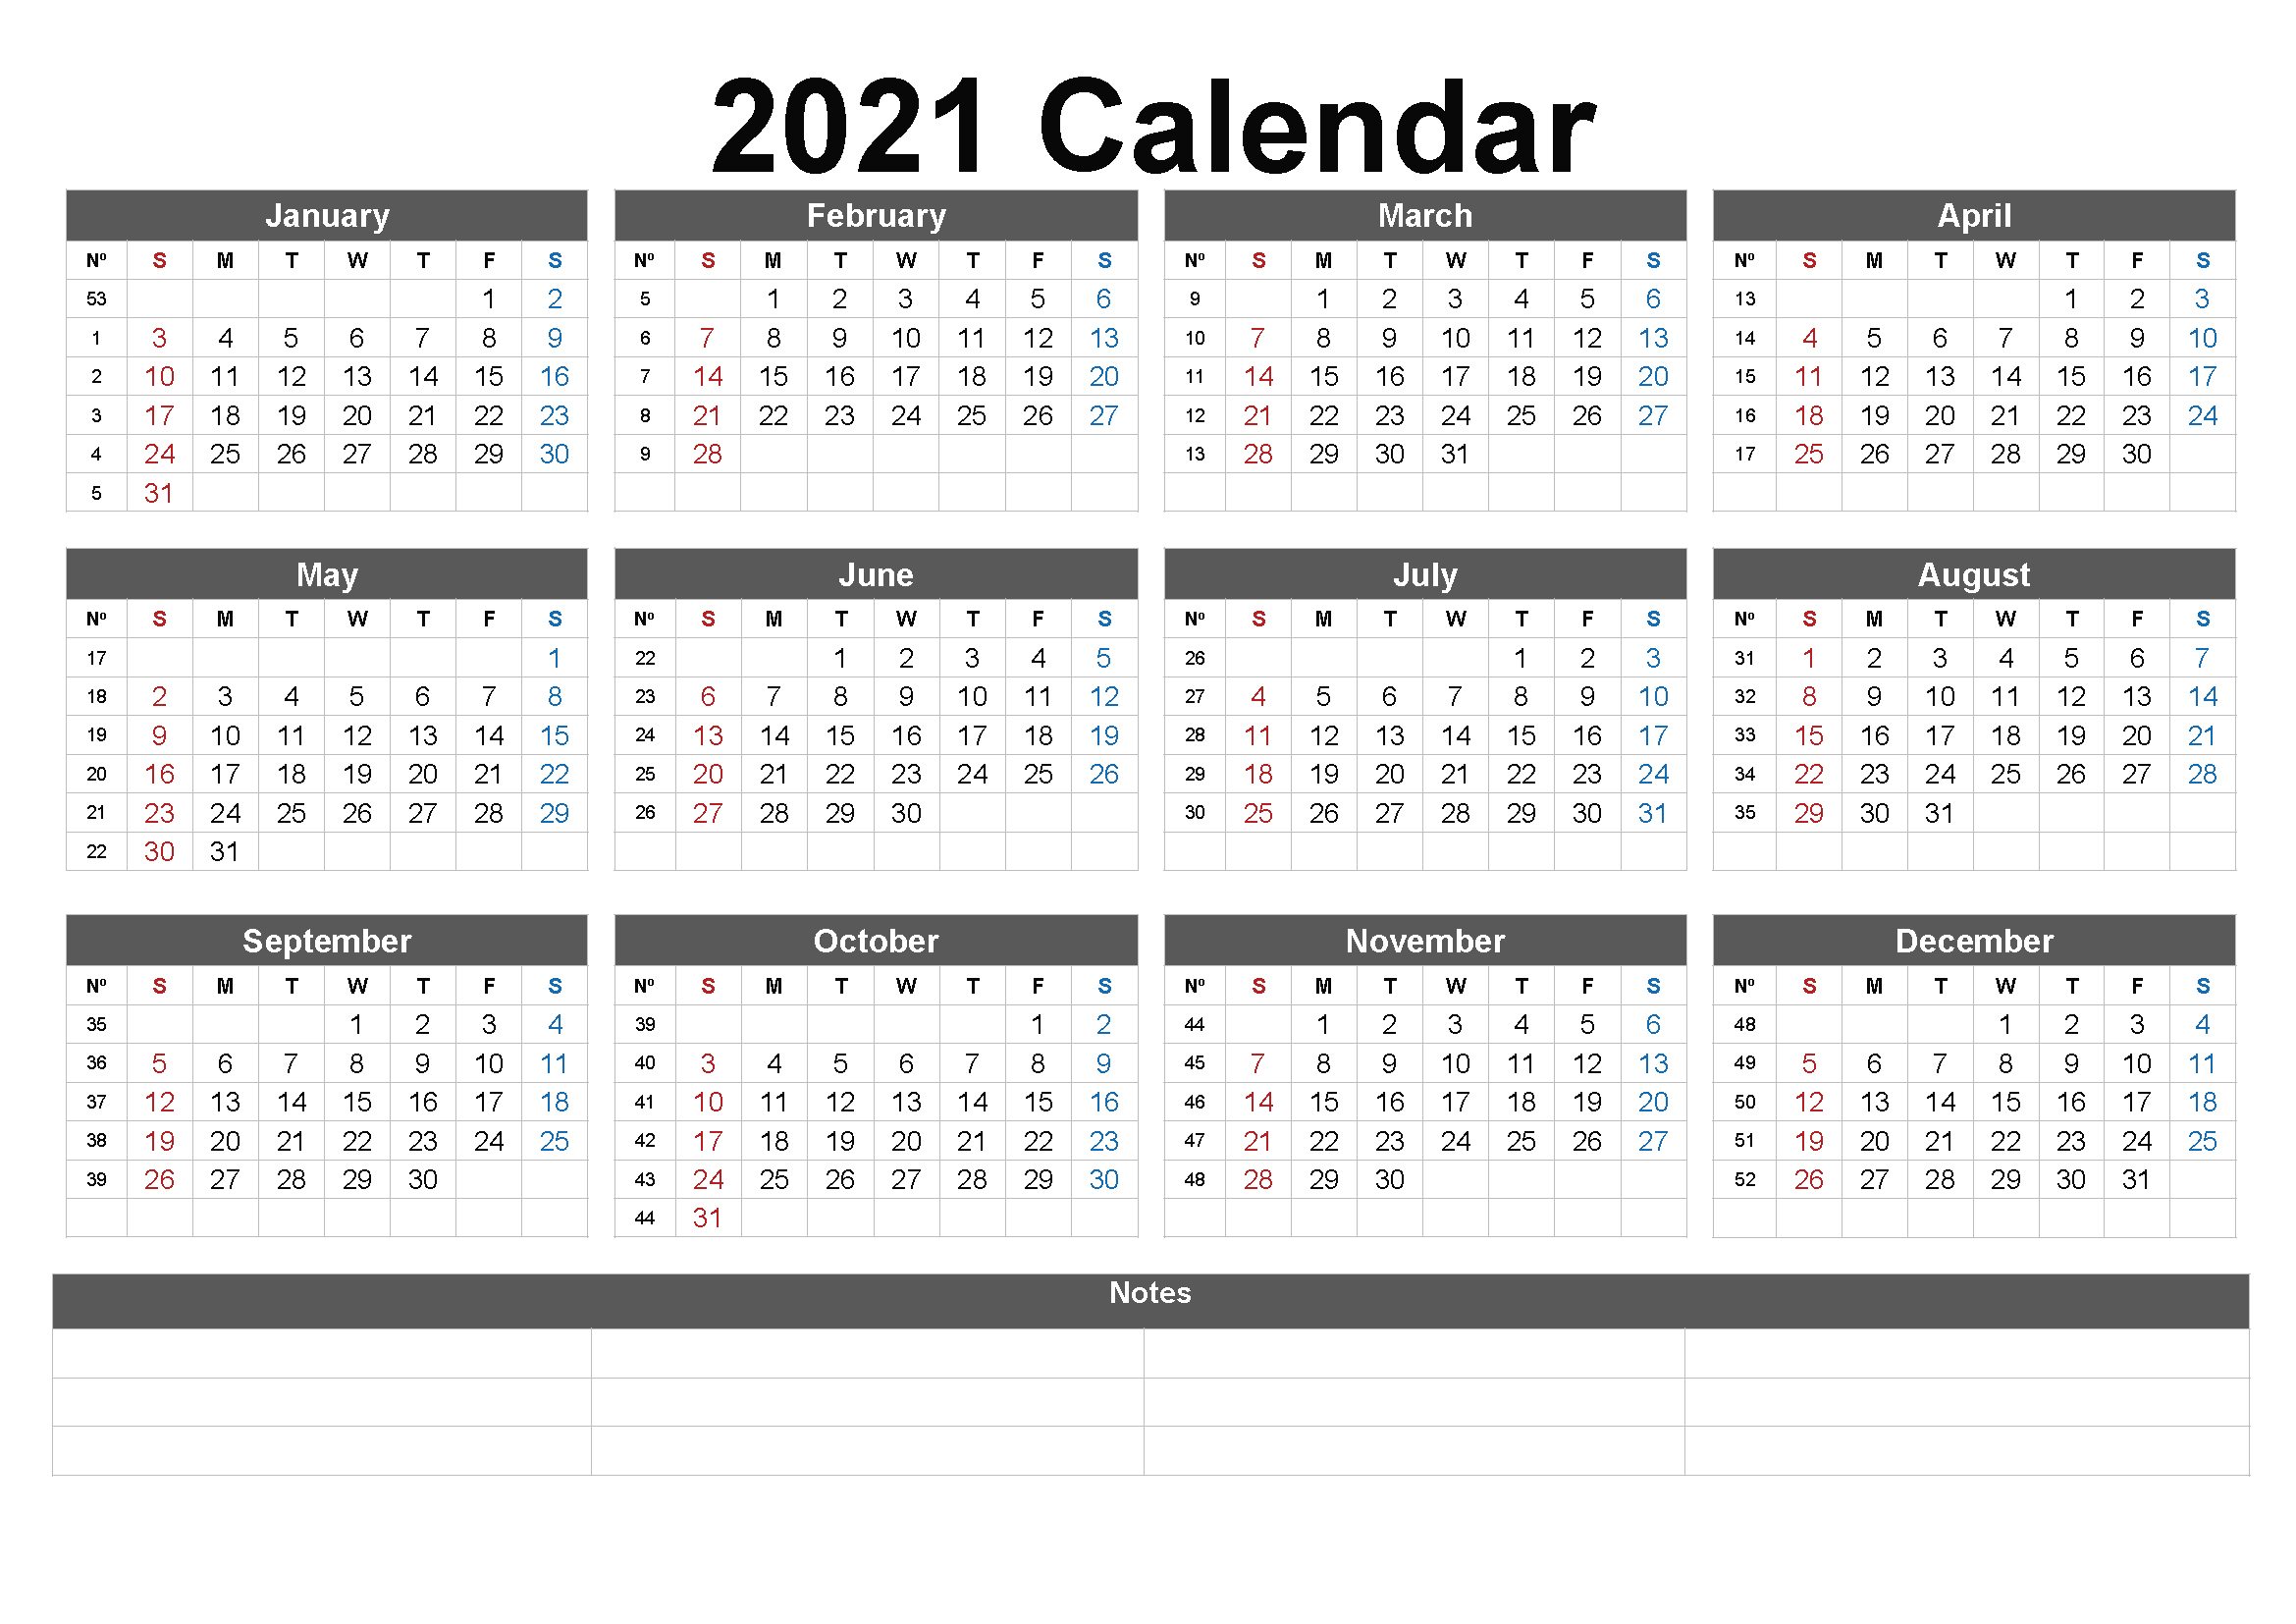 Free 2021 Hotbed Calendar From BioSpace